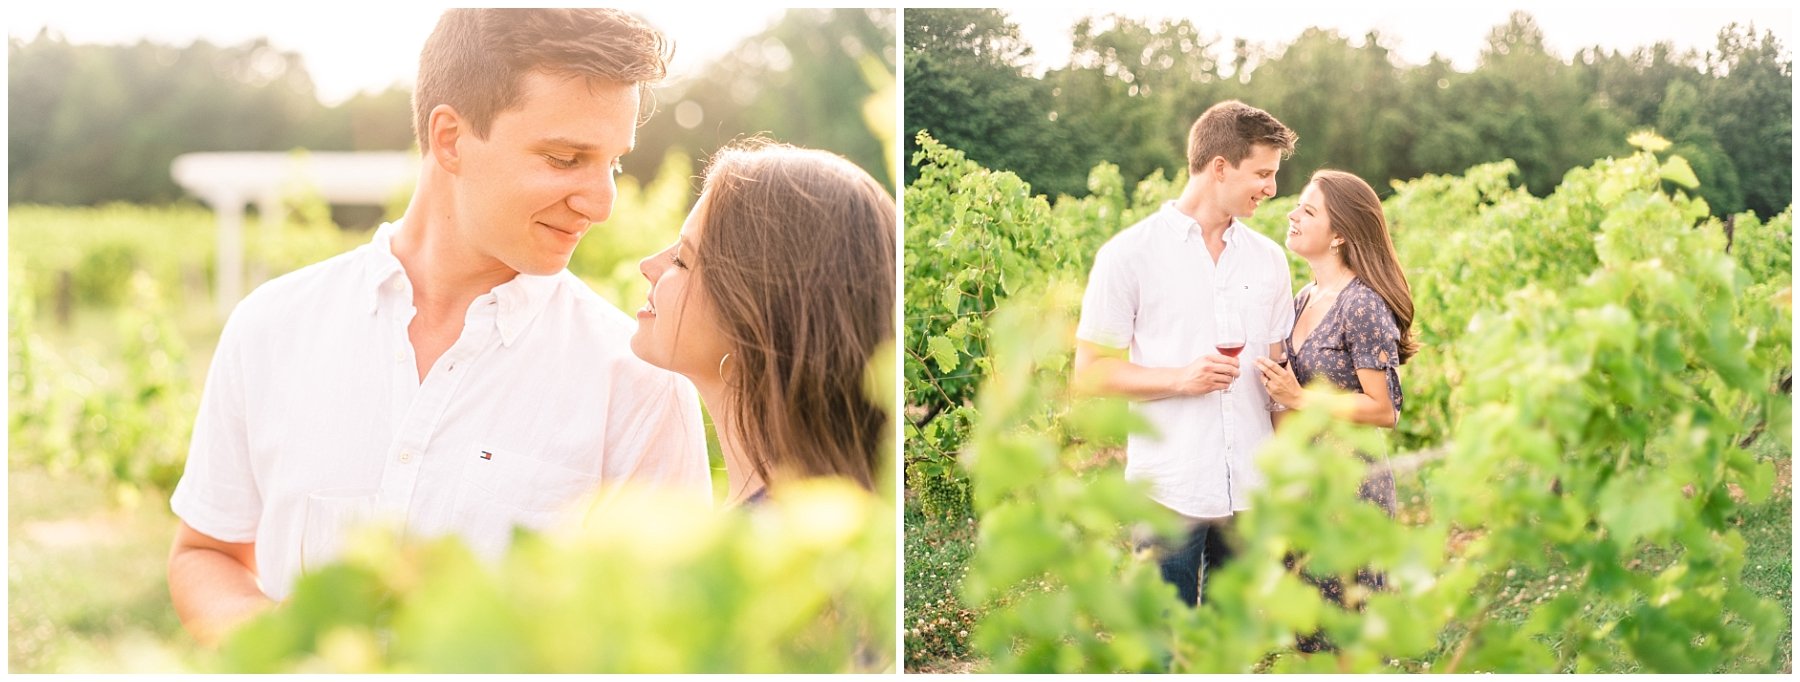 lafayette indiana engagement photography lake michigan vineyard winery wedding photographer elopement destination wedding (13).jpg